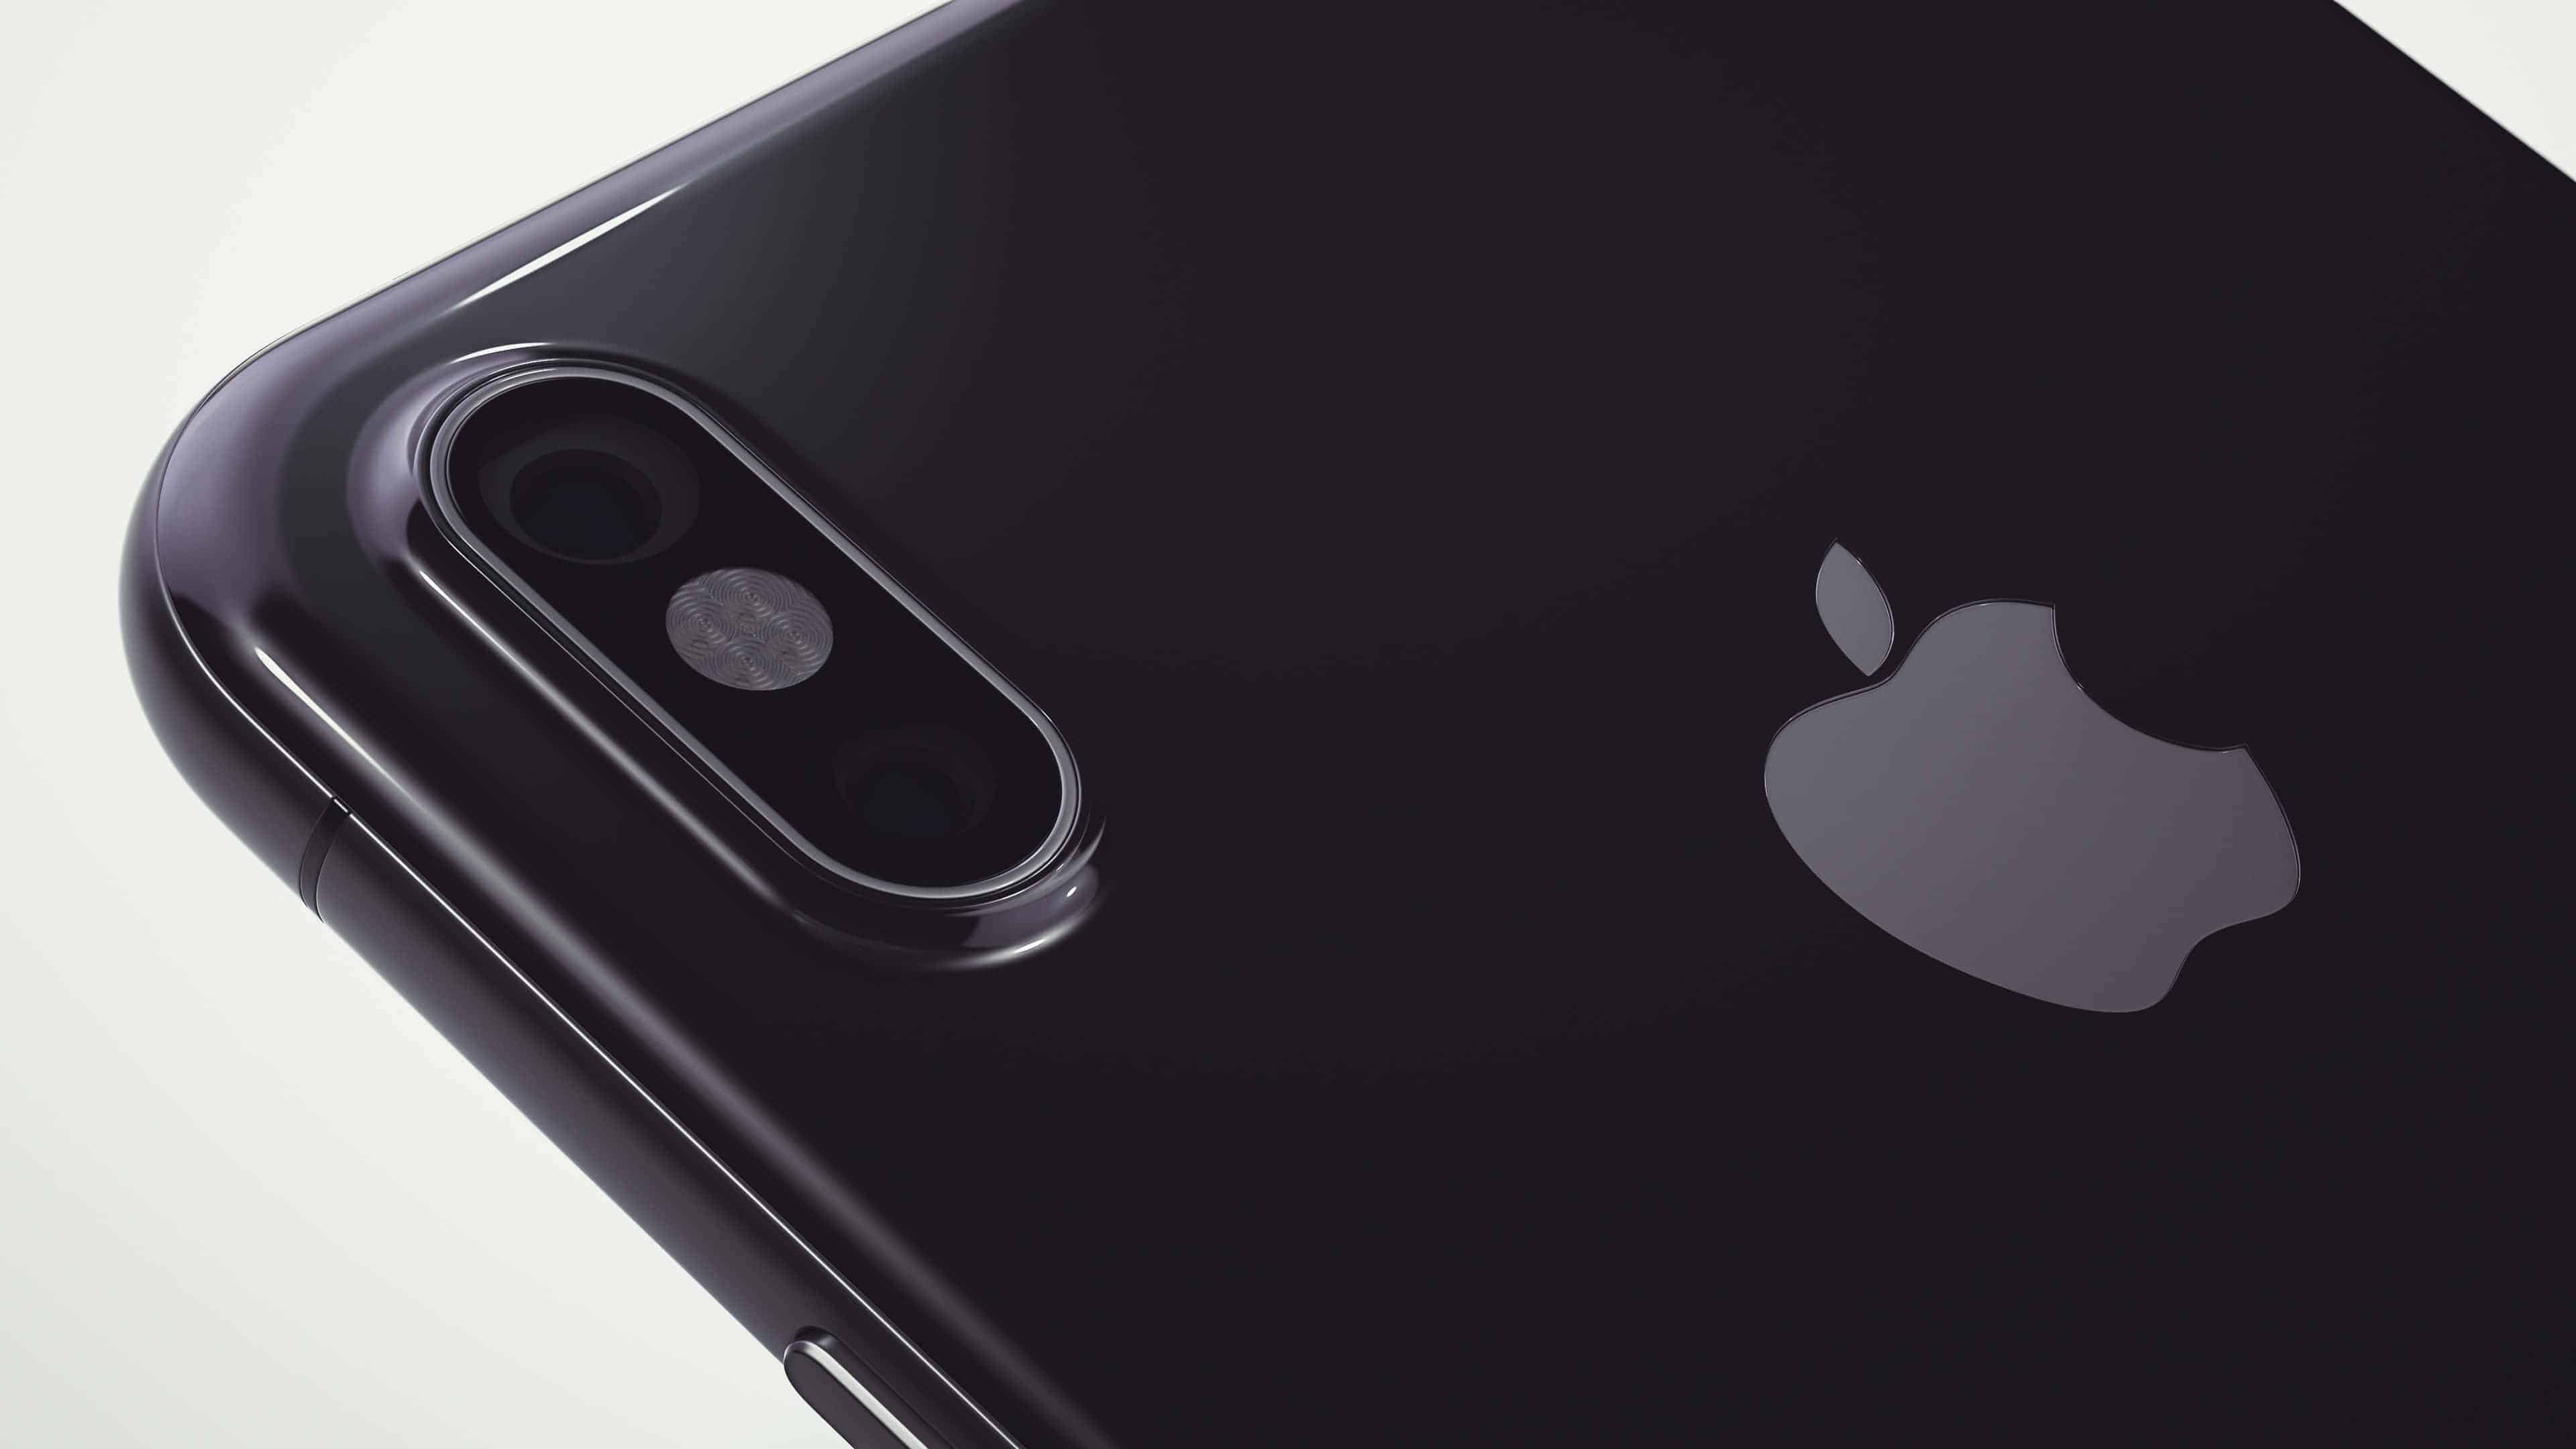 Apple Iphone 8 Black Back Uhd 4k Wallpaper Pixelz